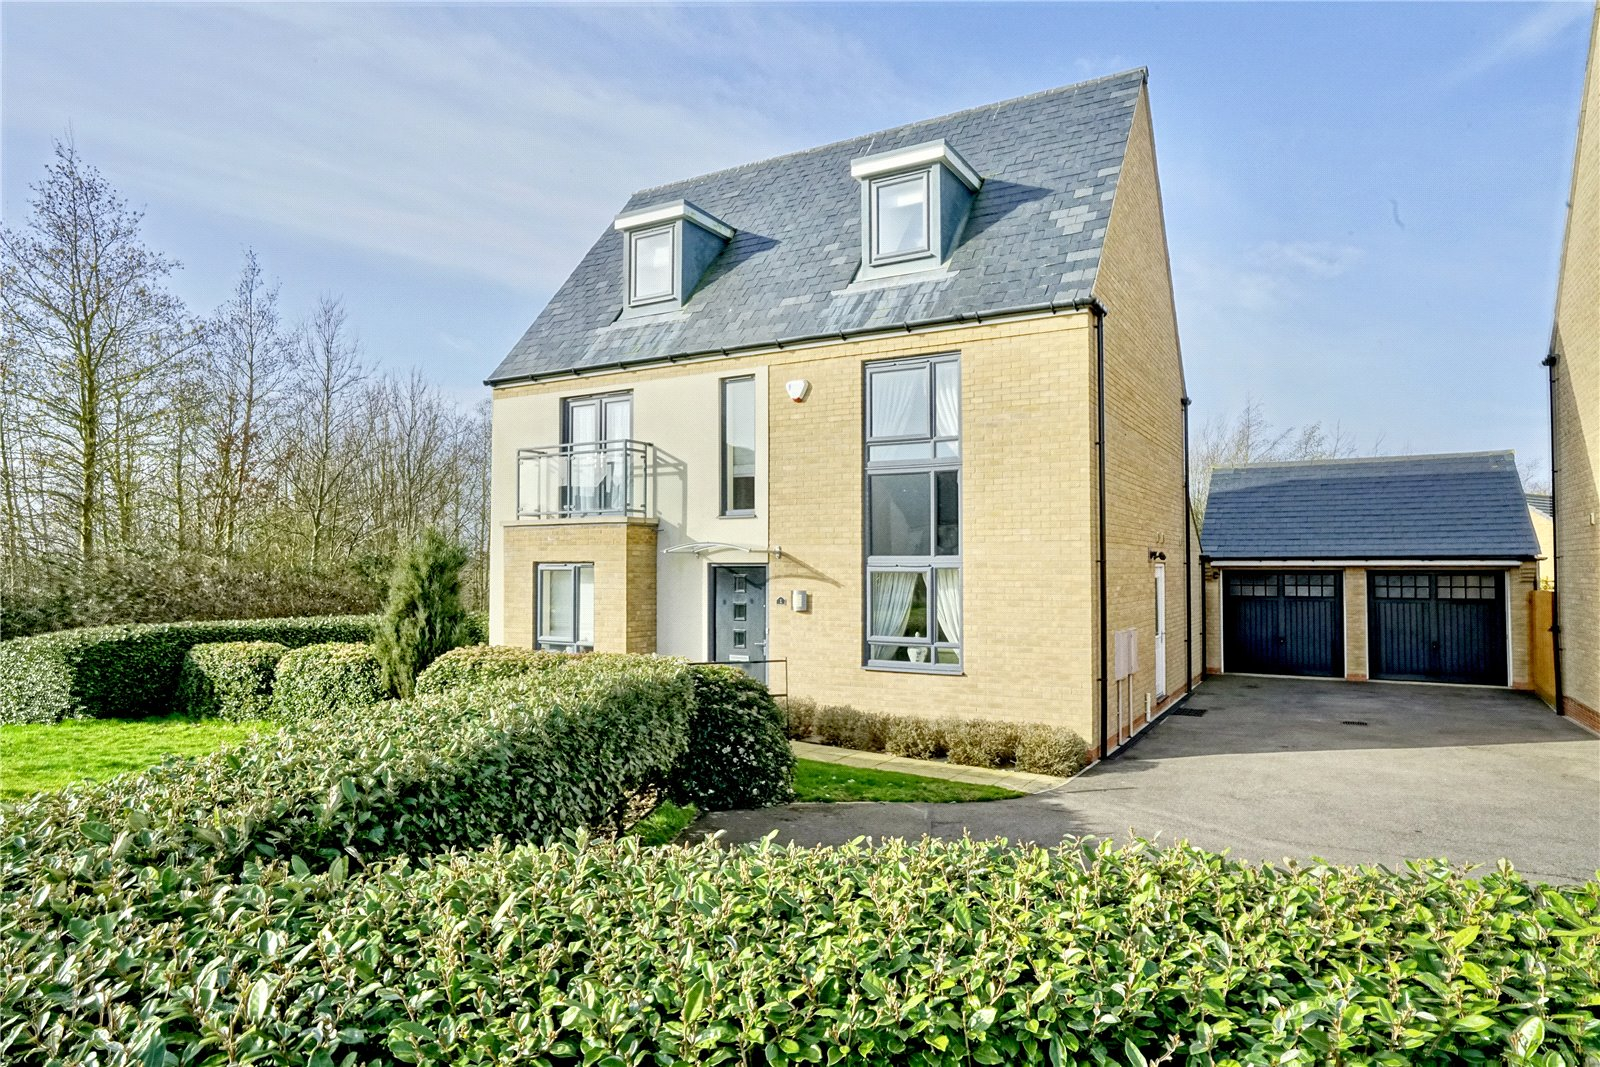 5 bed house for sale in Papworth Everard, CB23 3AQ, CB23